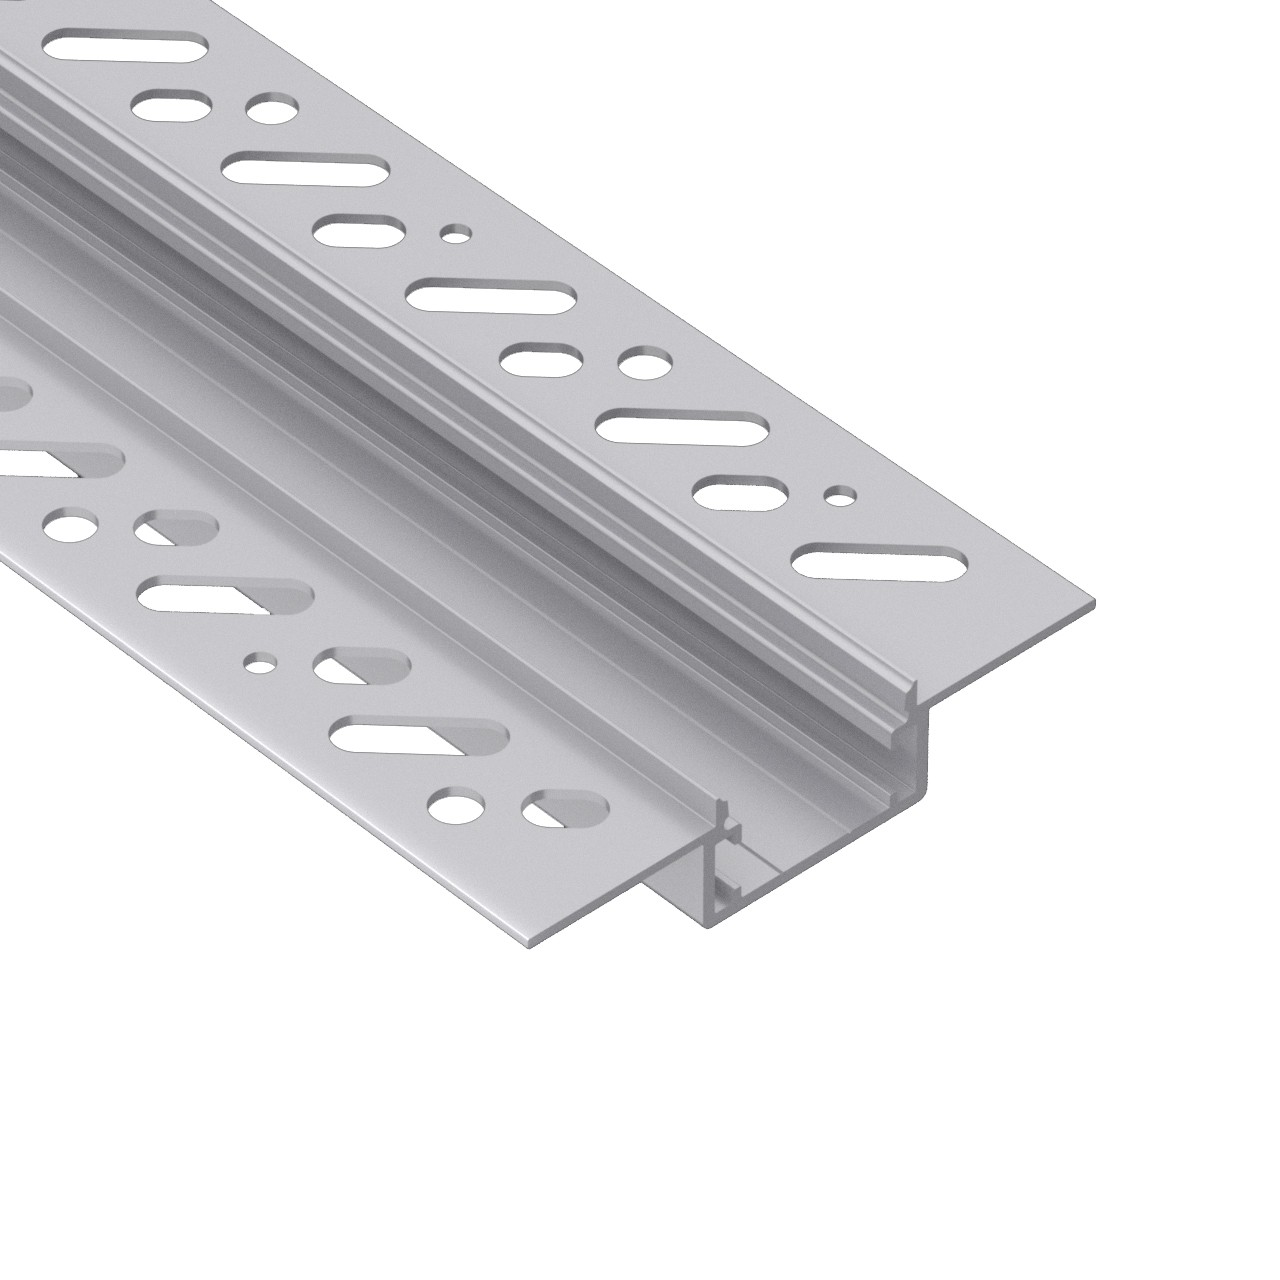 CT4N Trimless Aluminium Extrusions for recessing into plasterboard walls and ceilings 66.4x14.1mm